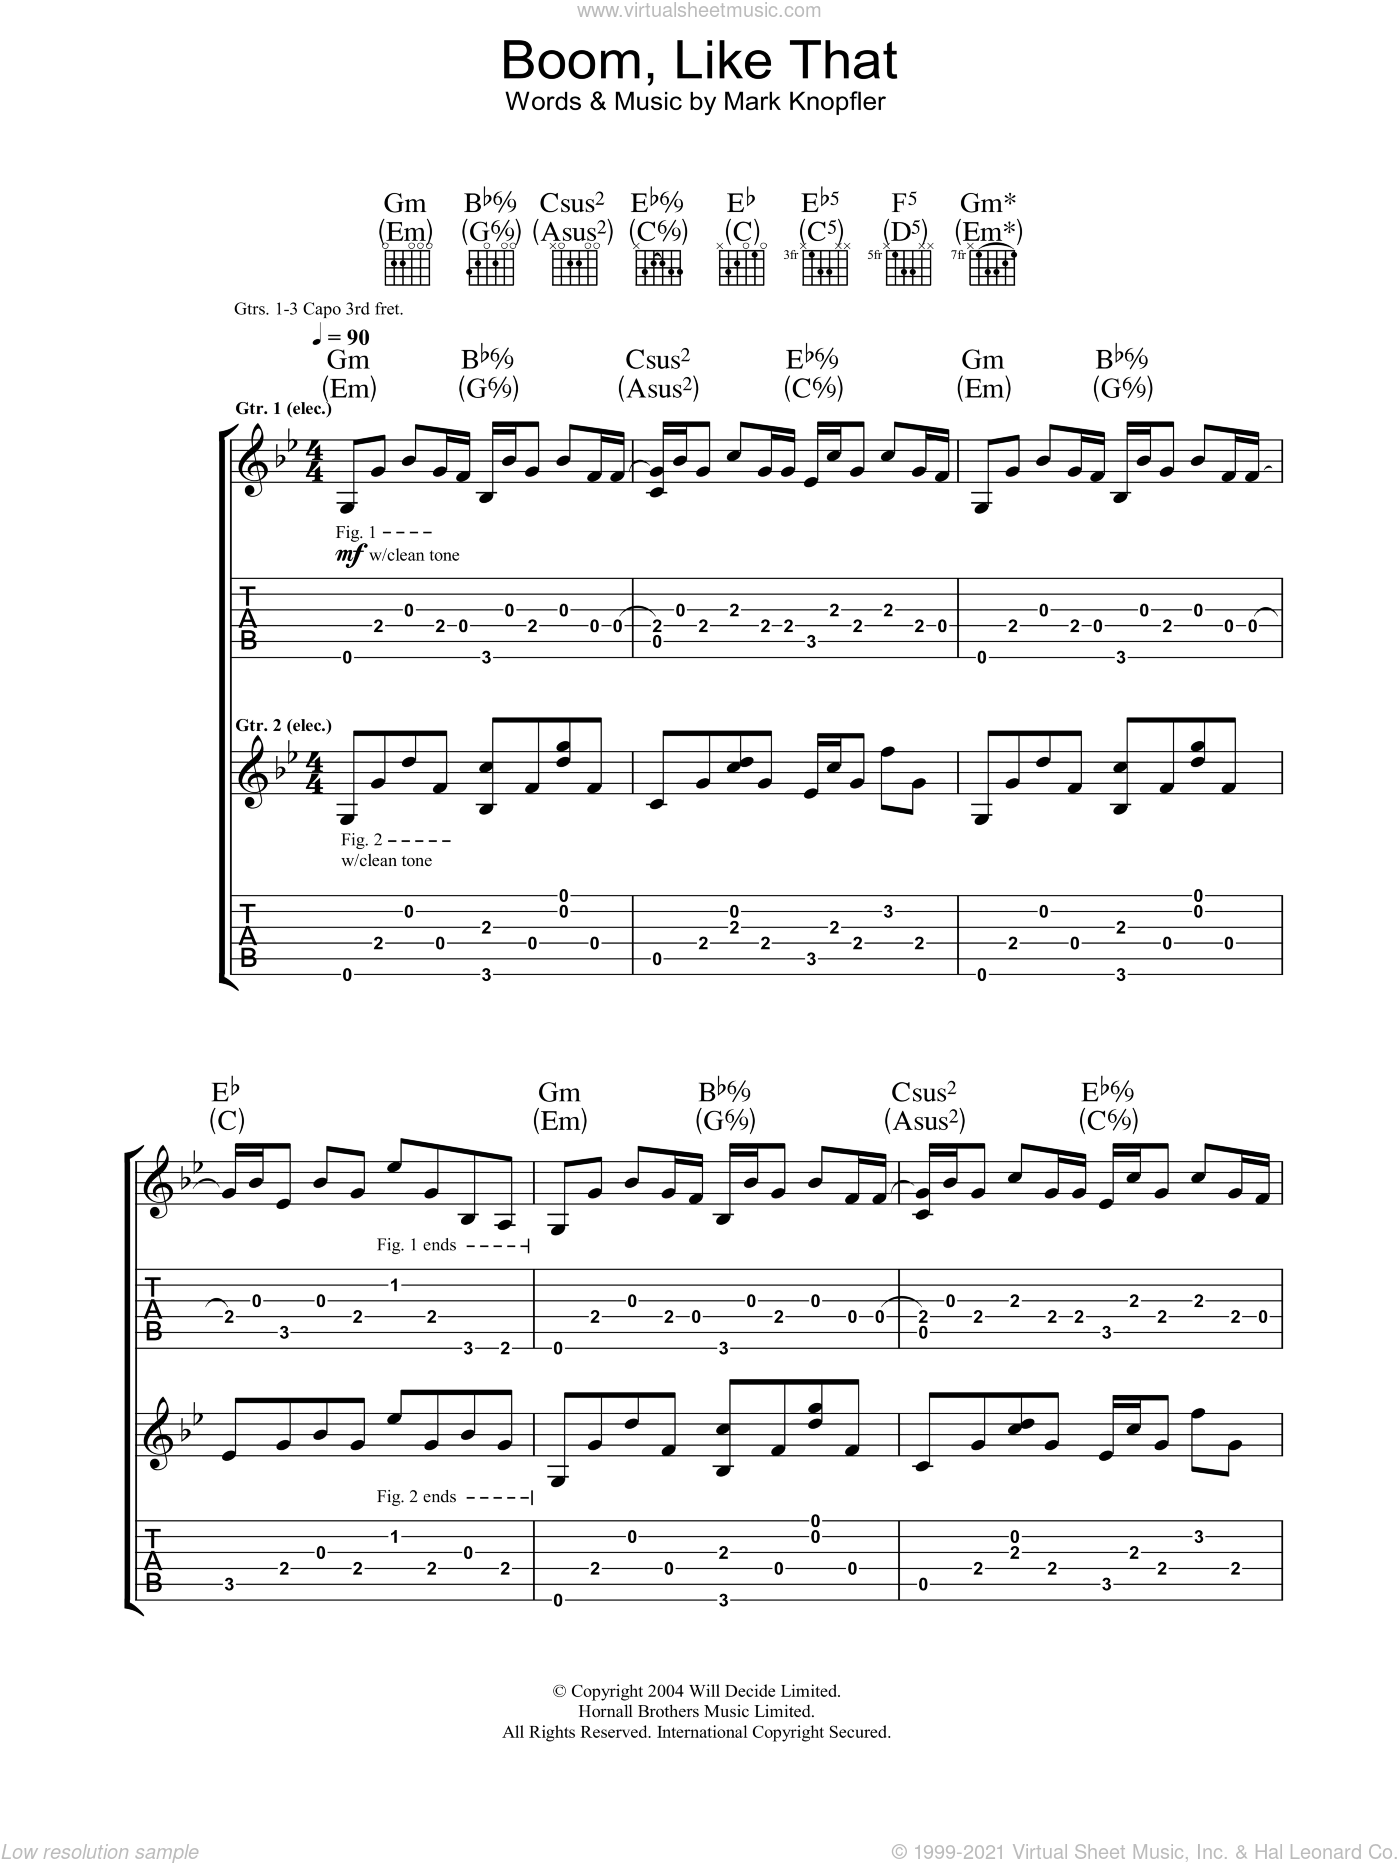 Boom, Like That sheet music for guitar (tablature) by Mark Knopfler. Score Image Preview.